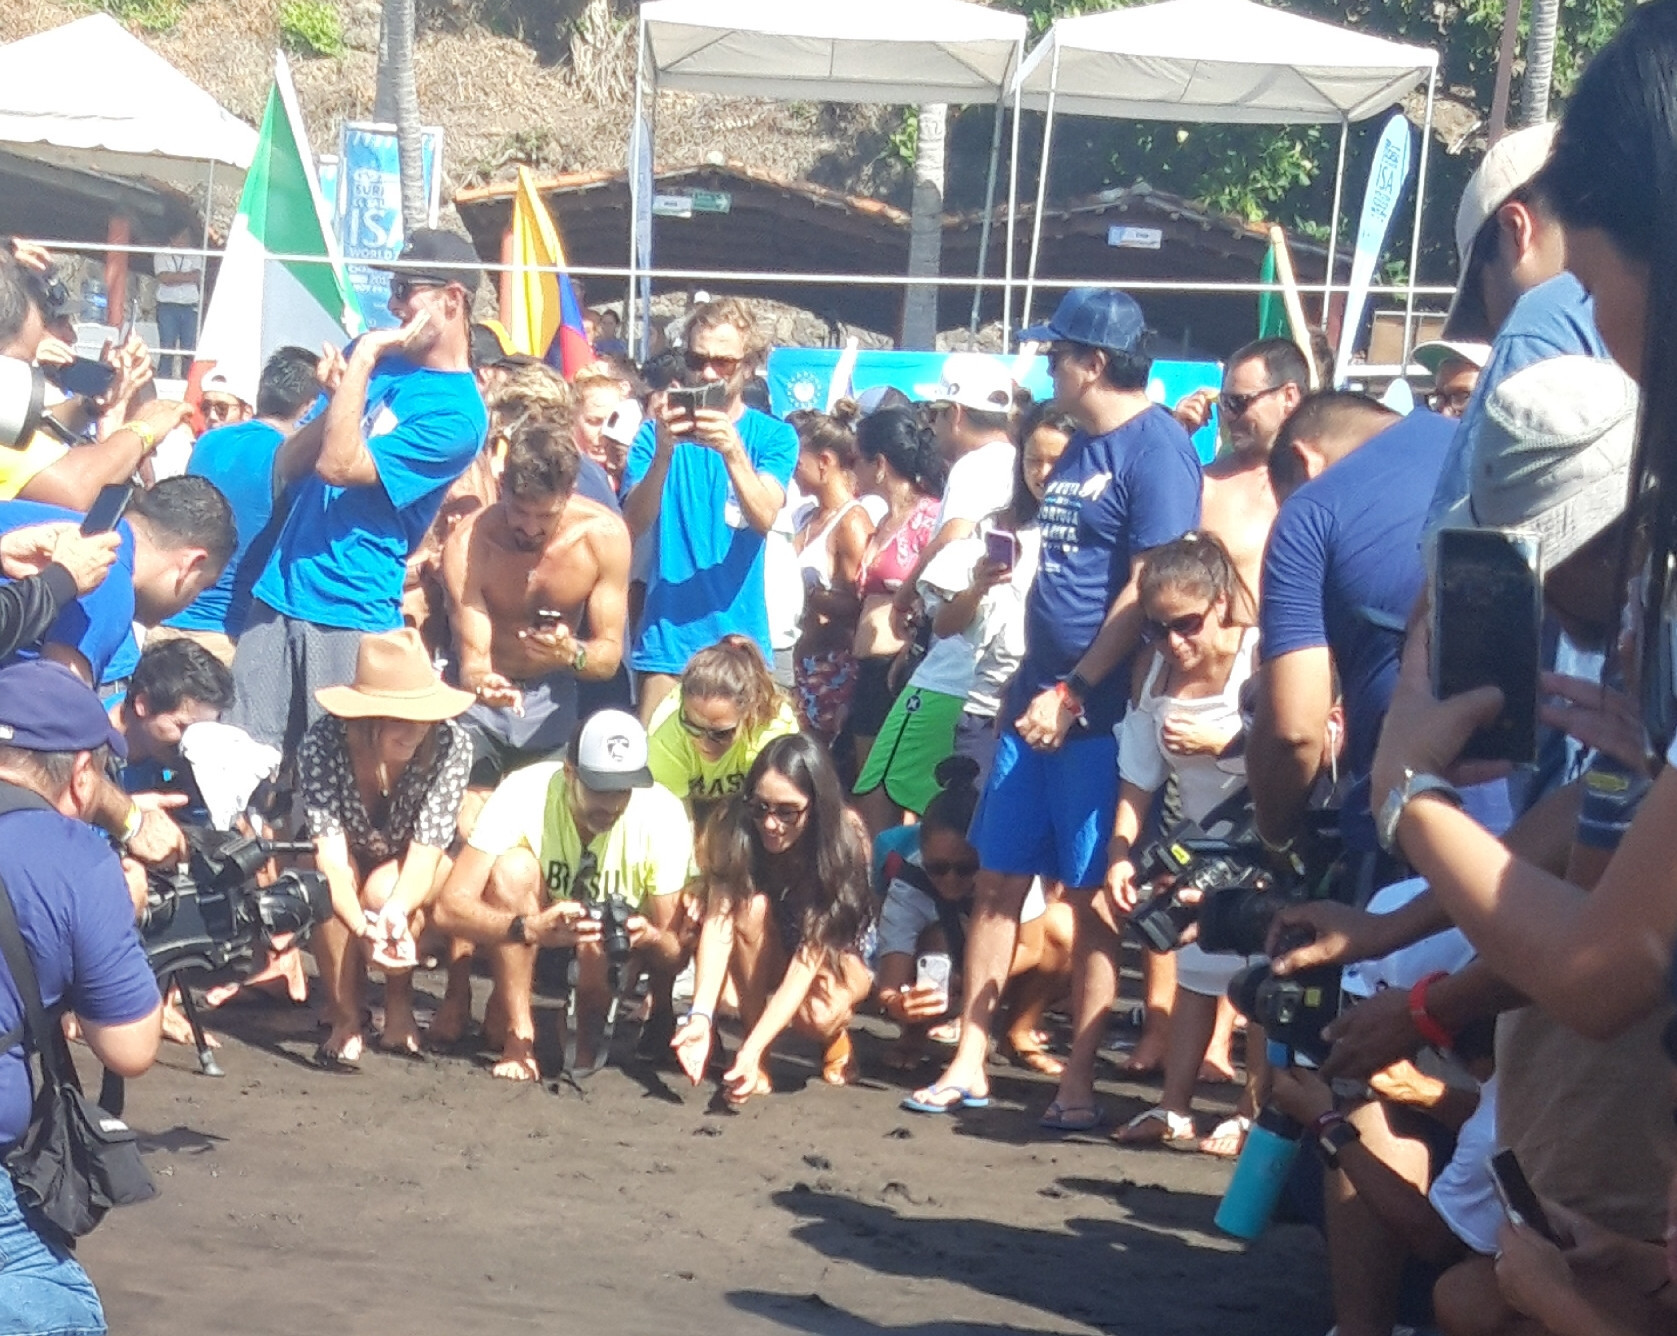 Salvadoran conservation efforts showcased as surfers release 200 sea turtles to ocean